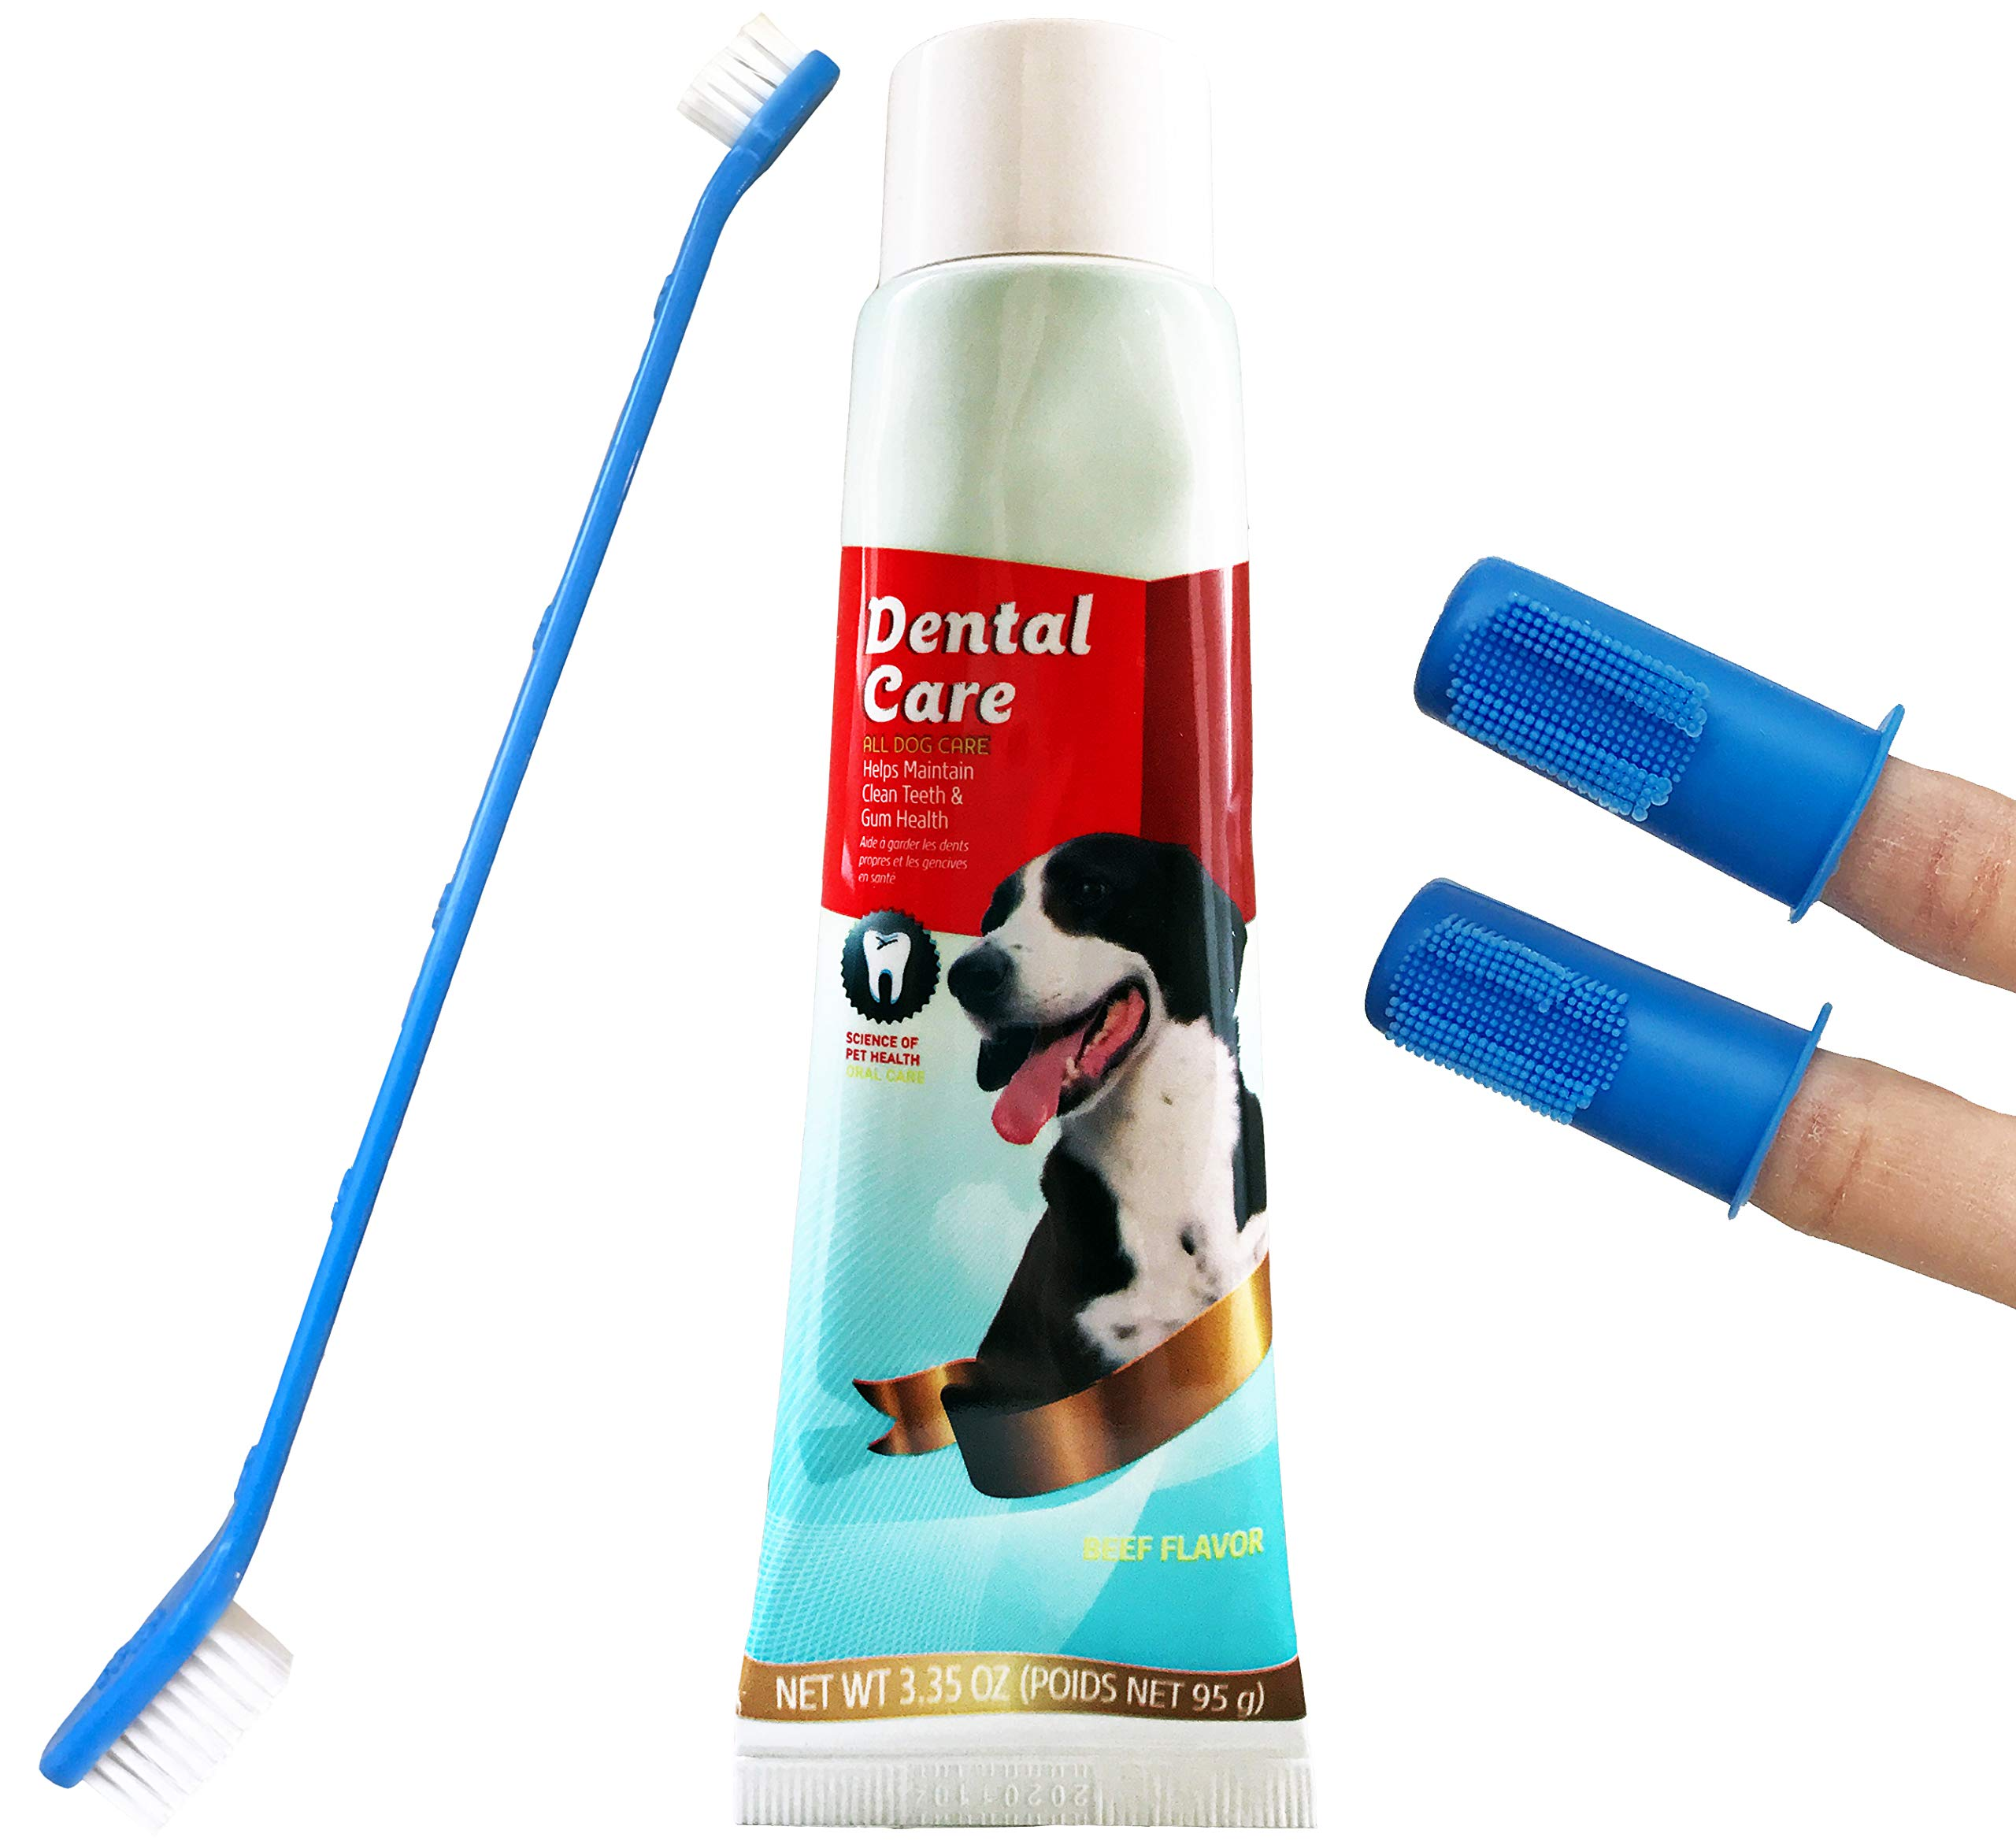 Dog Teeth Cleaning Set with Beef Flavored CET Toothpaste for Dogs Best Dog Toothbrush Set Includes 2 Puppy Finger Toothbrushes and Dual-Headed Toothbrush for Large and Small Dogs